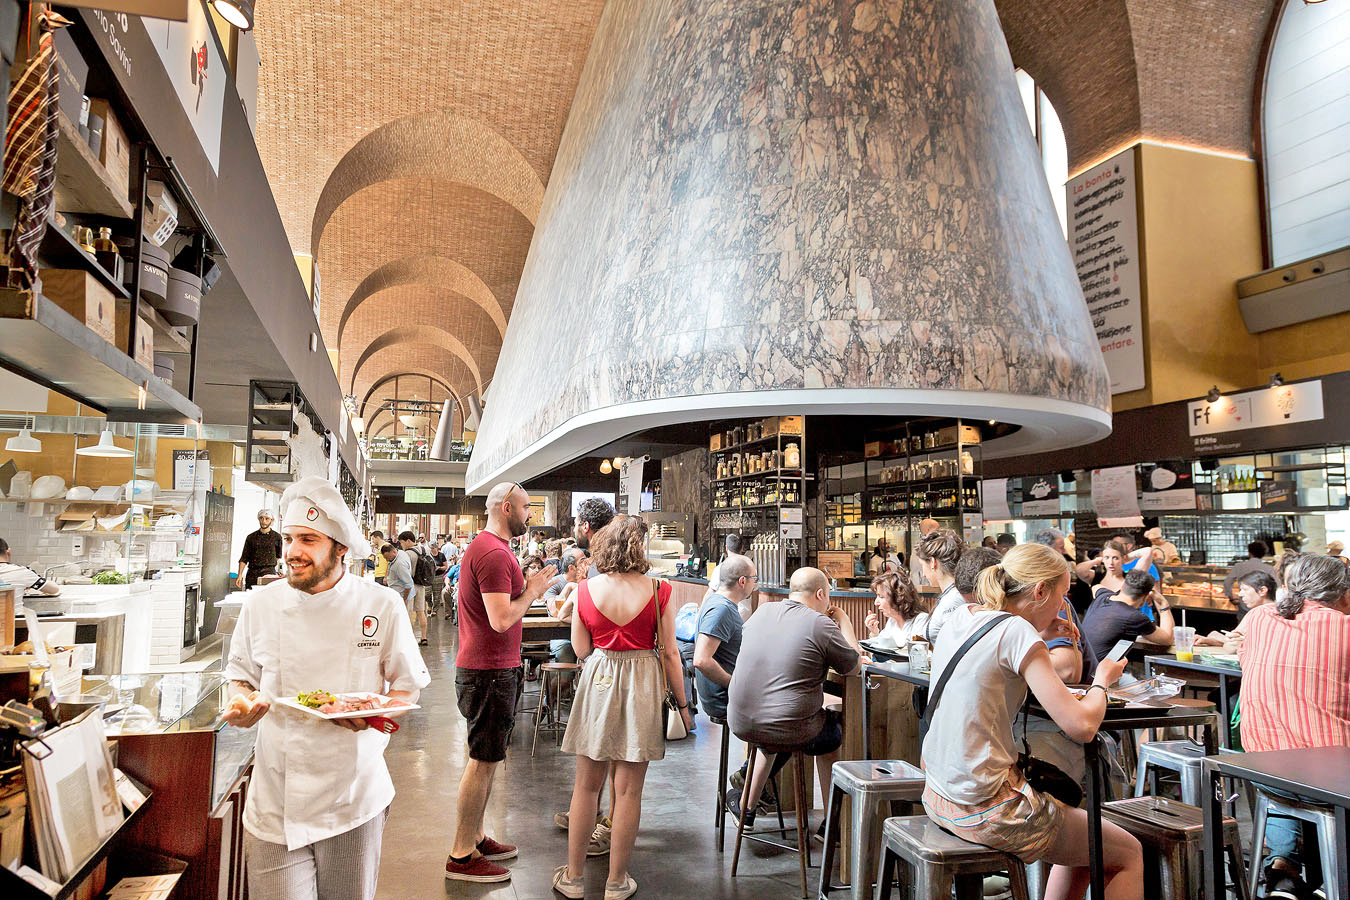 Where to Eat: Mercato Centrale Roma